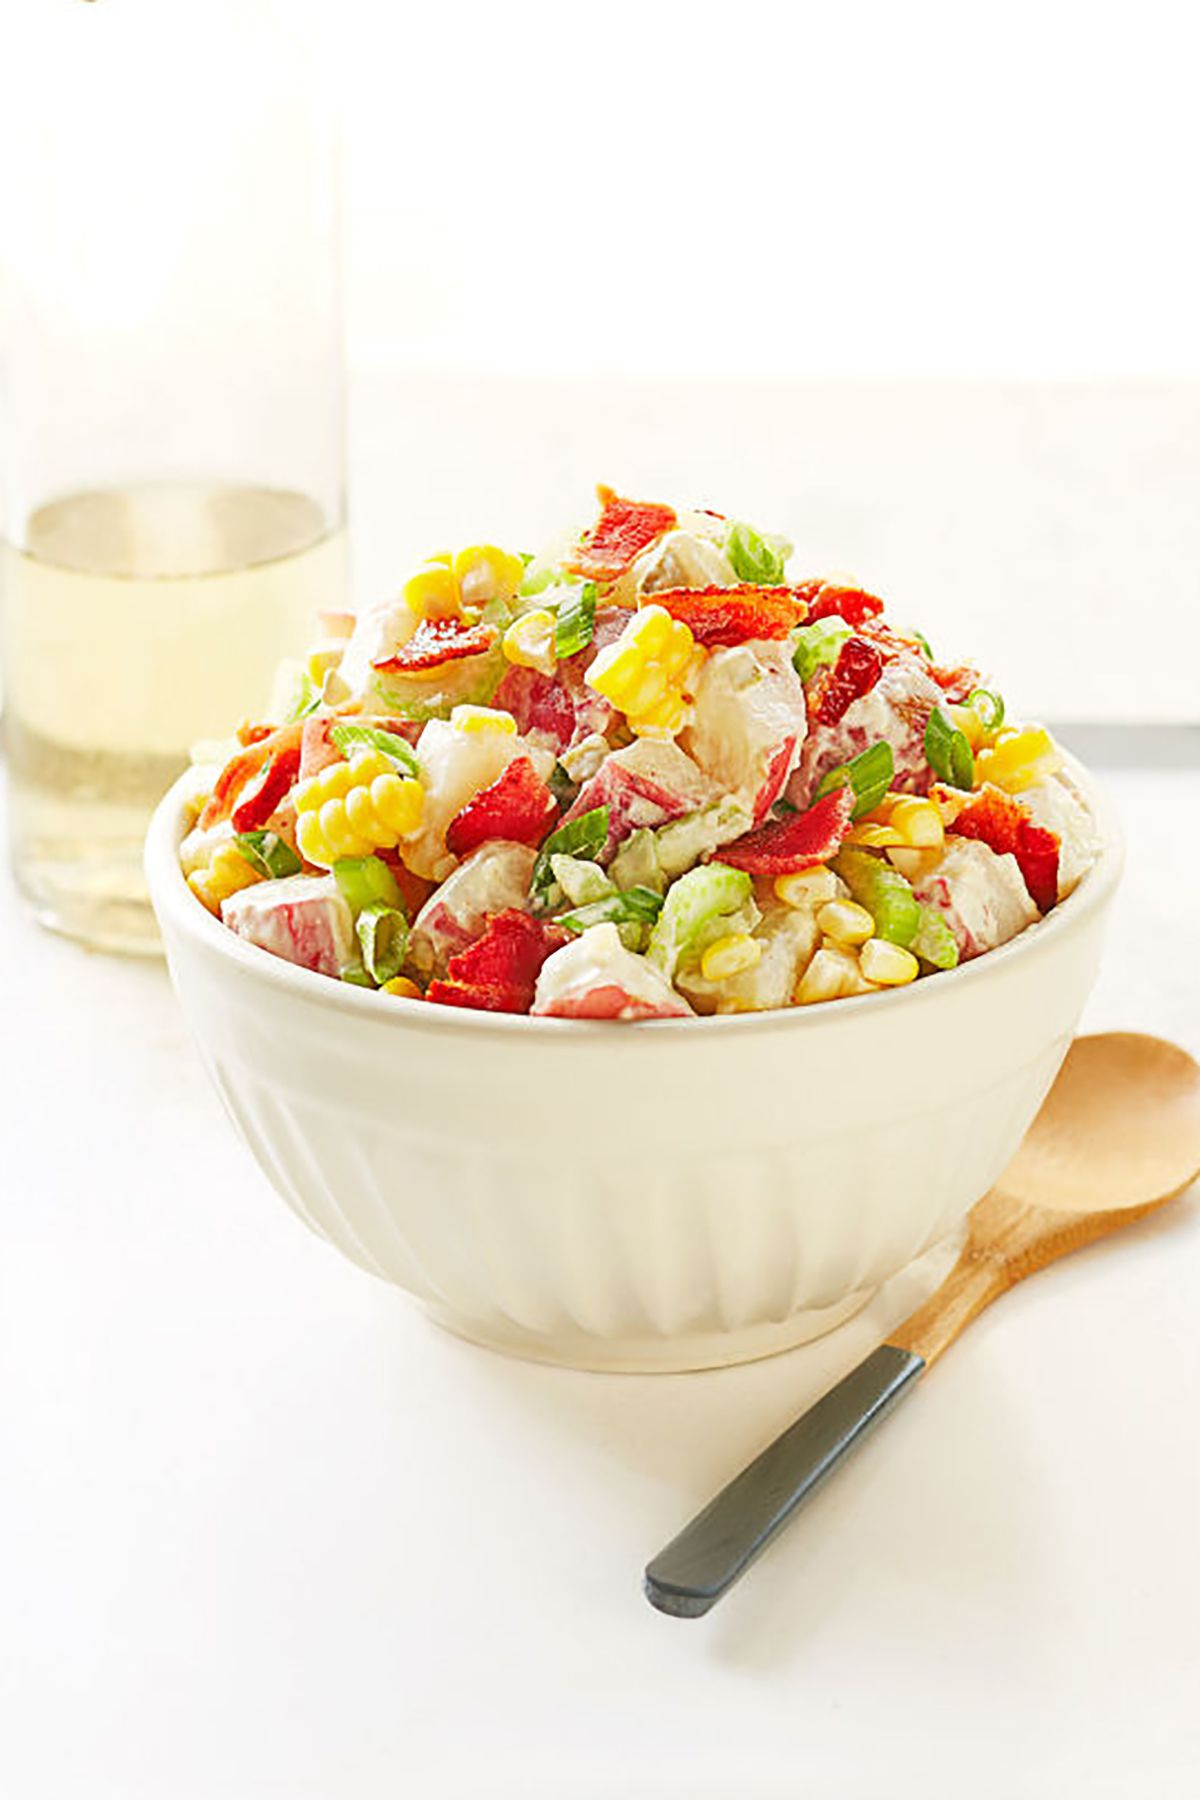 40 Easy Healthy Lunch Ideas - Best Recipes for Sandwiches and Salads ...